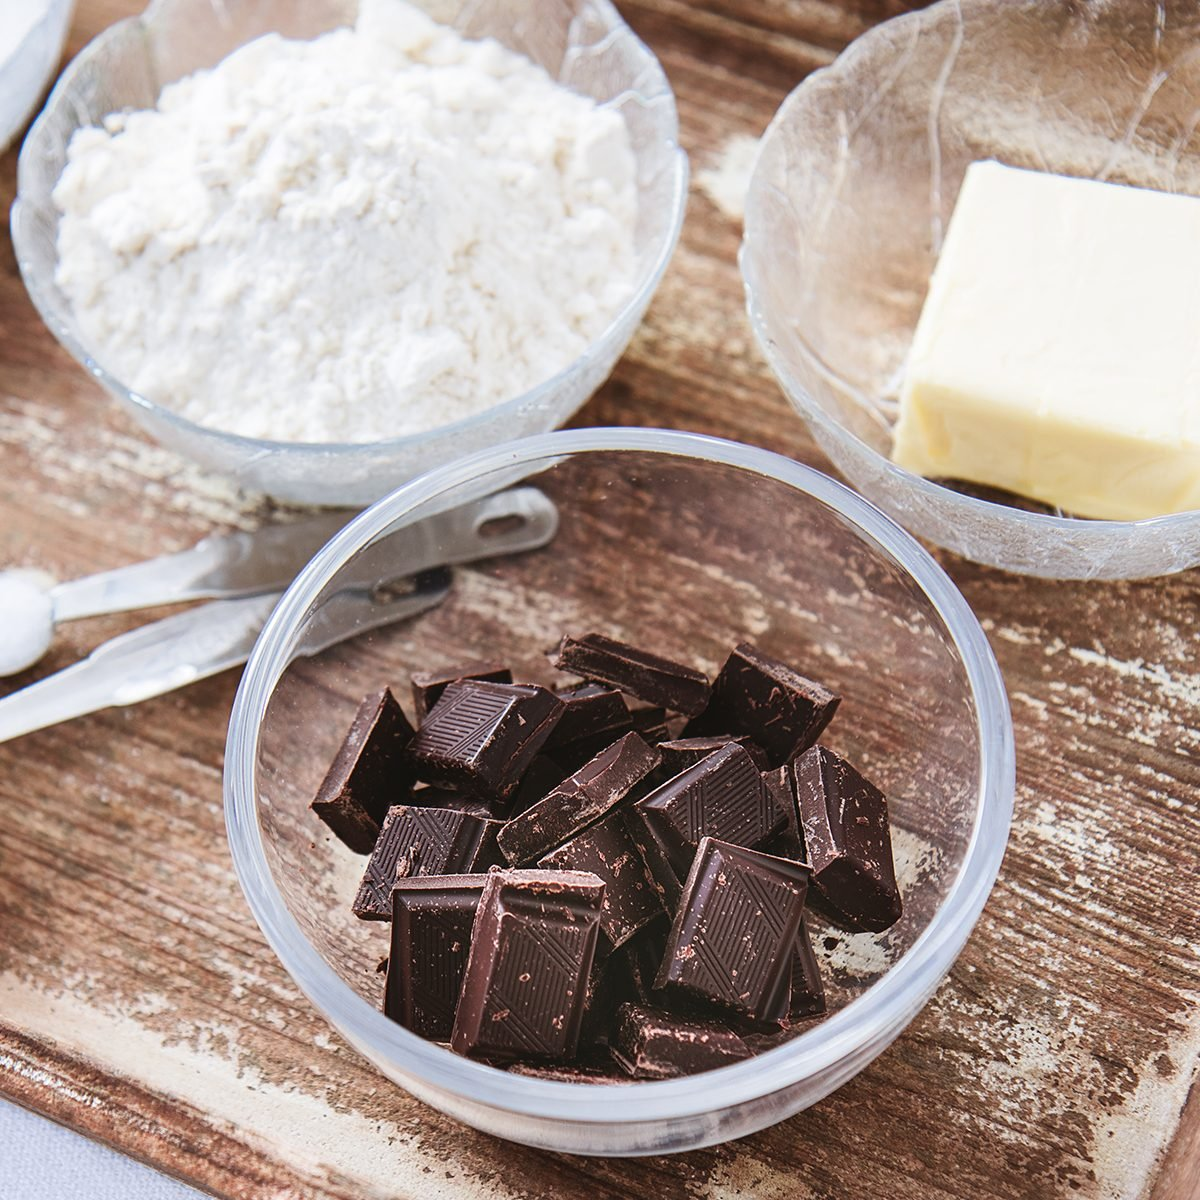 Baking ingredients for chocolate cake muffins or cookies lying ready on wooden kitchen tray.